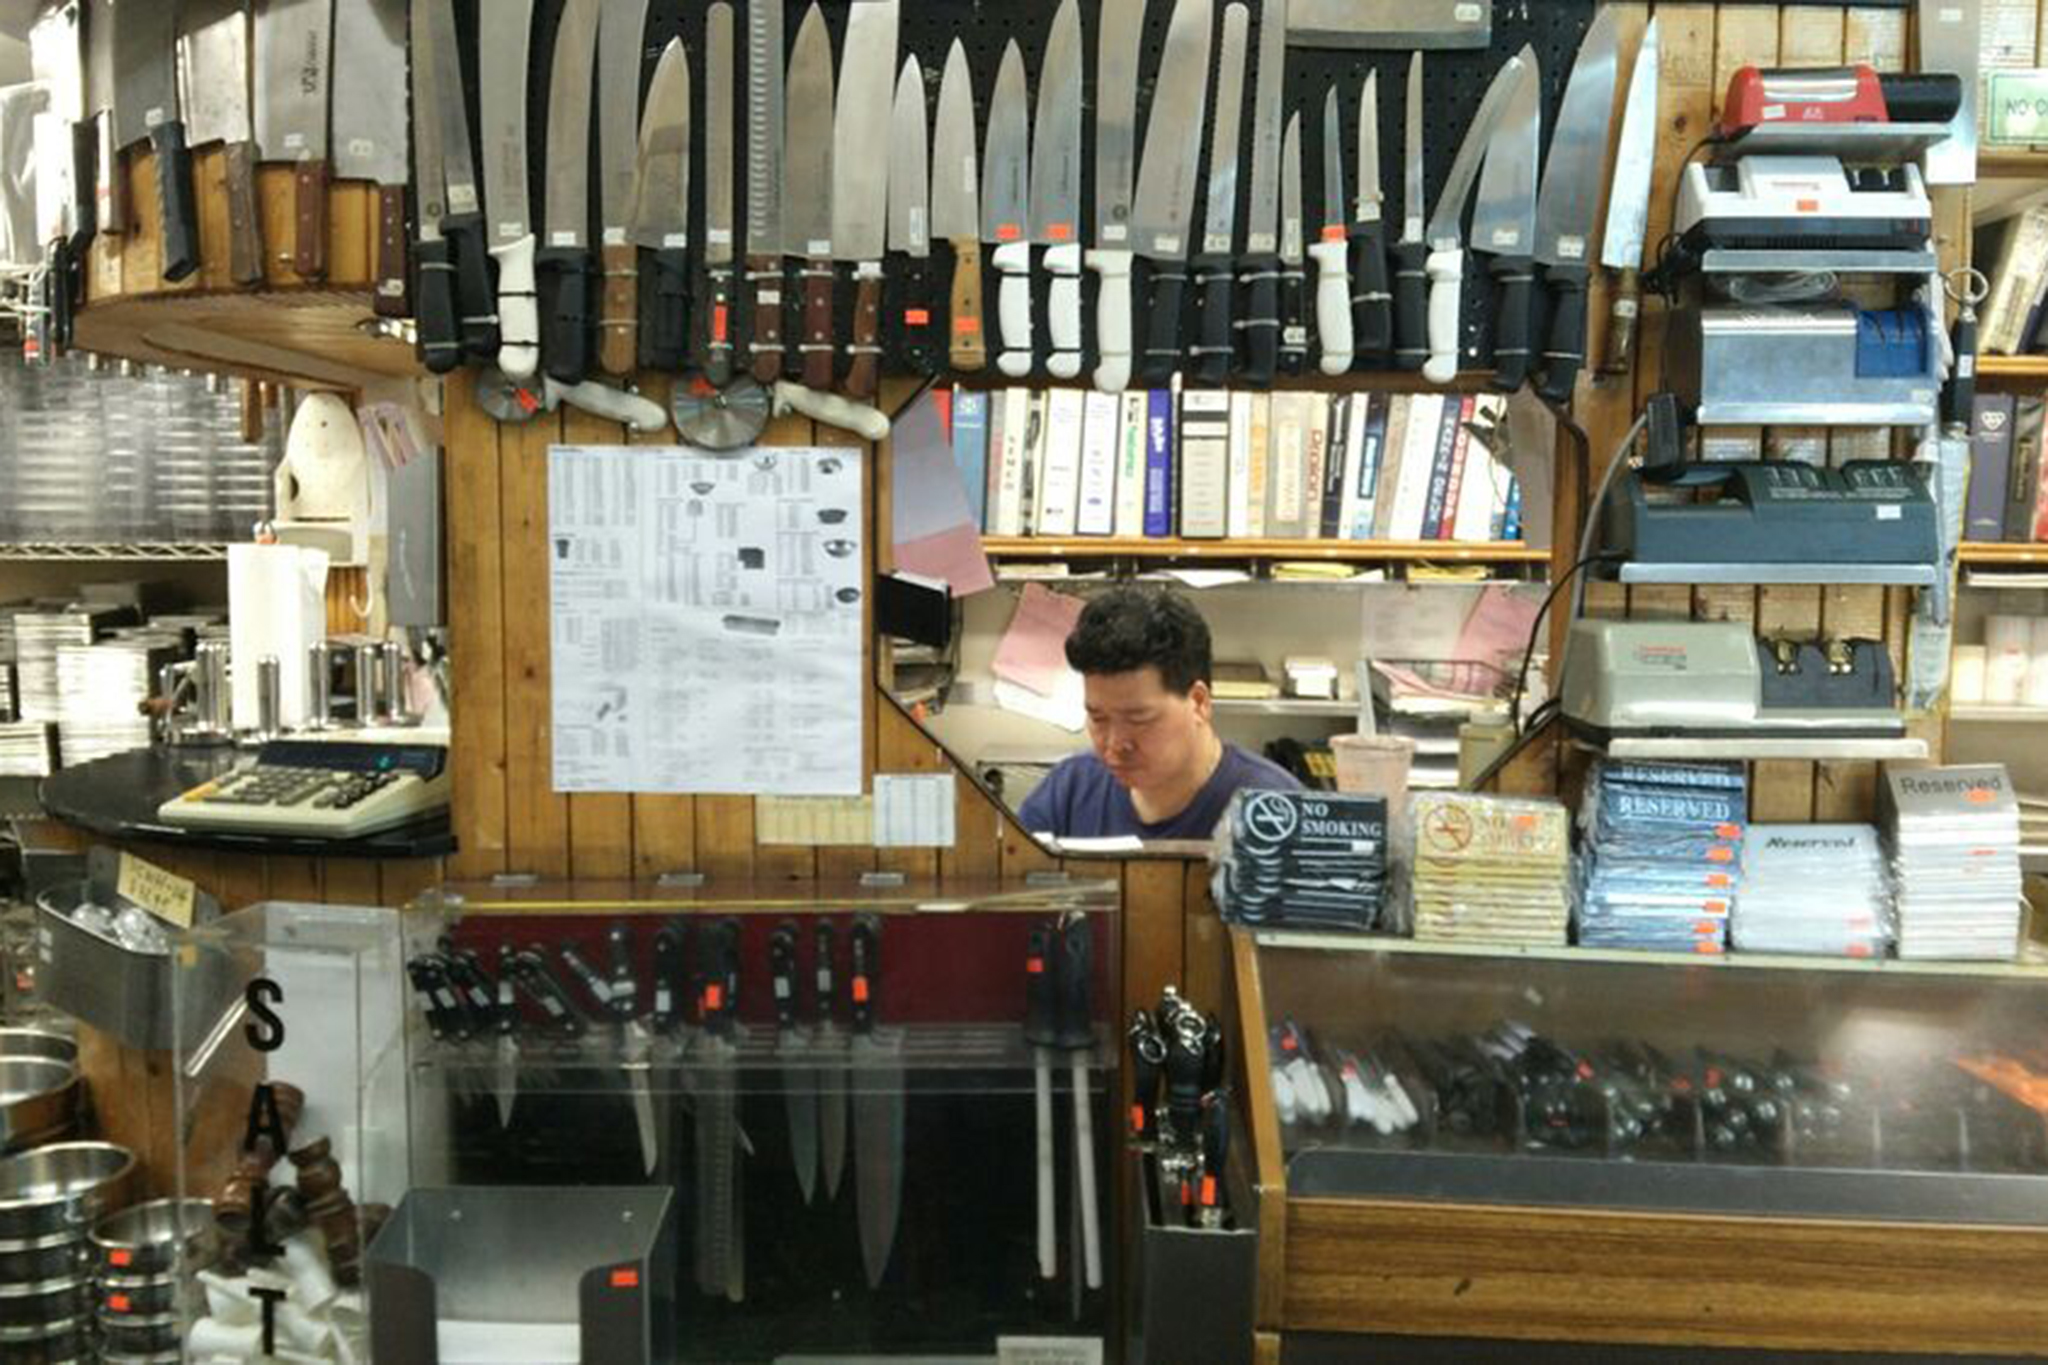 Resturant Stores Best Kitchen Stores In Nyc For Cooking Gear And Restaurant Tools